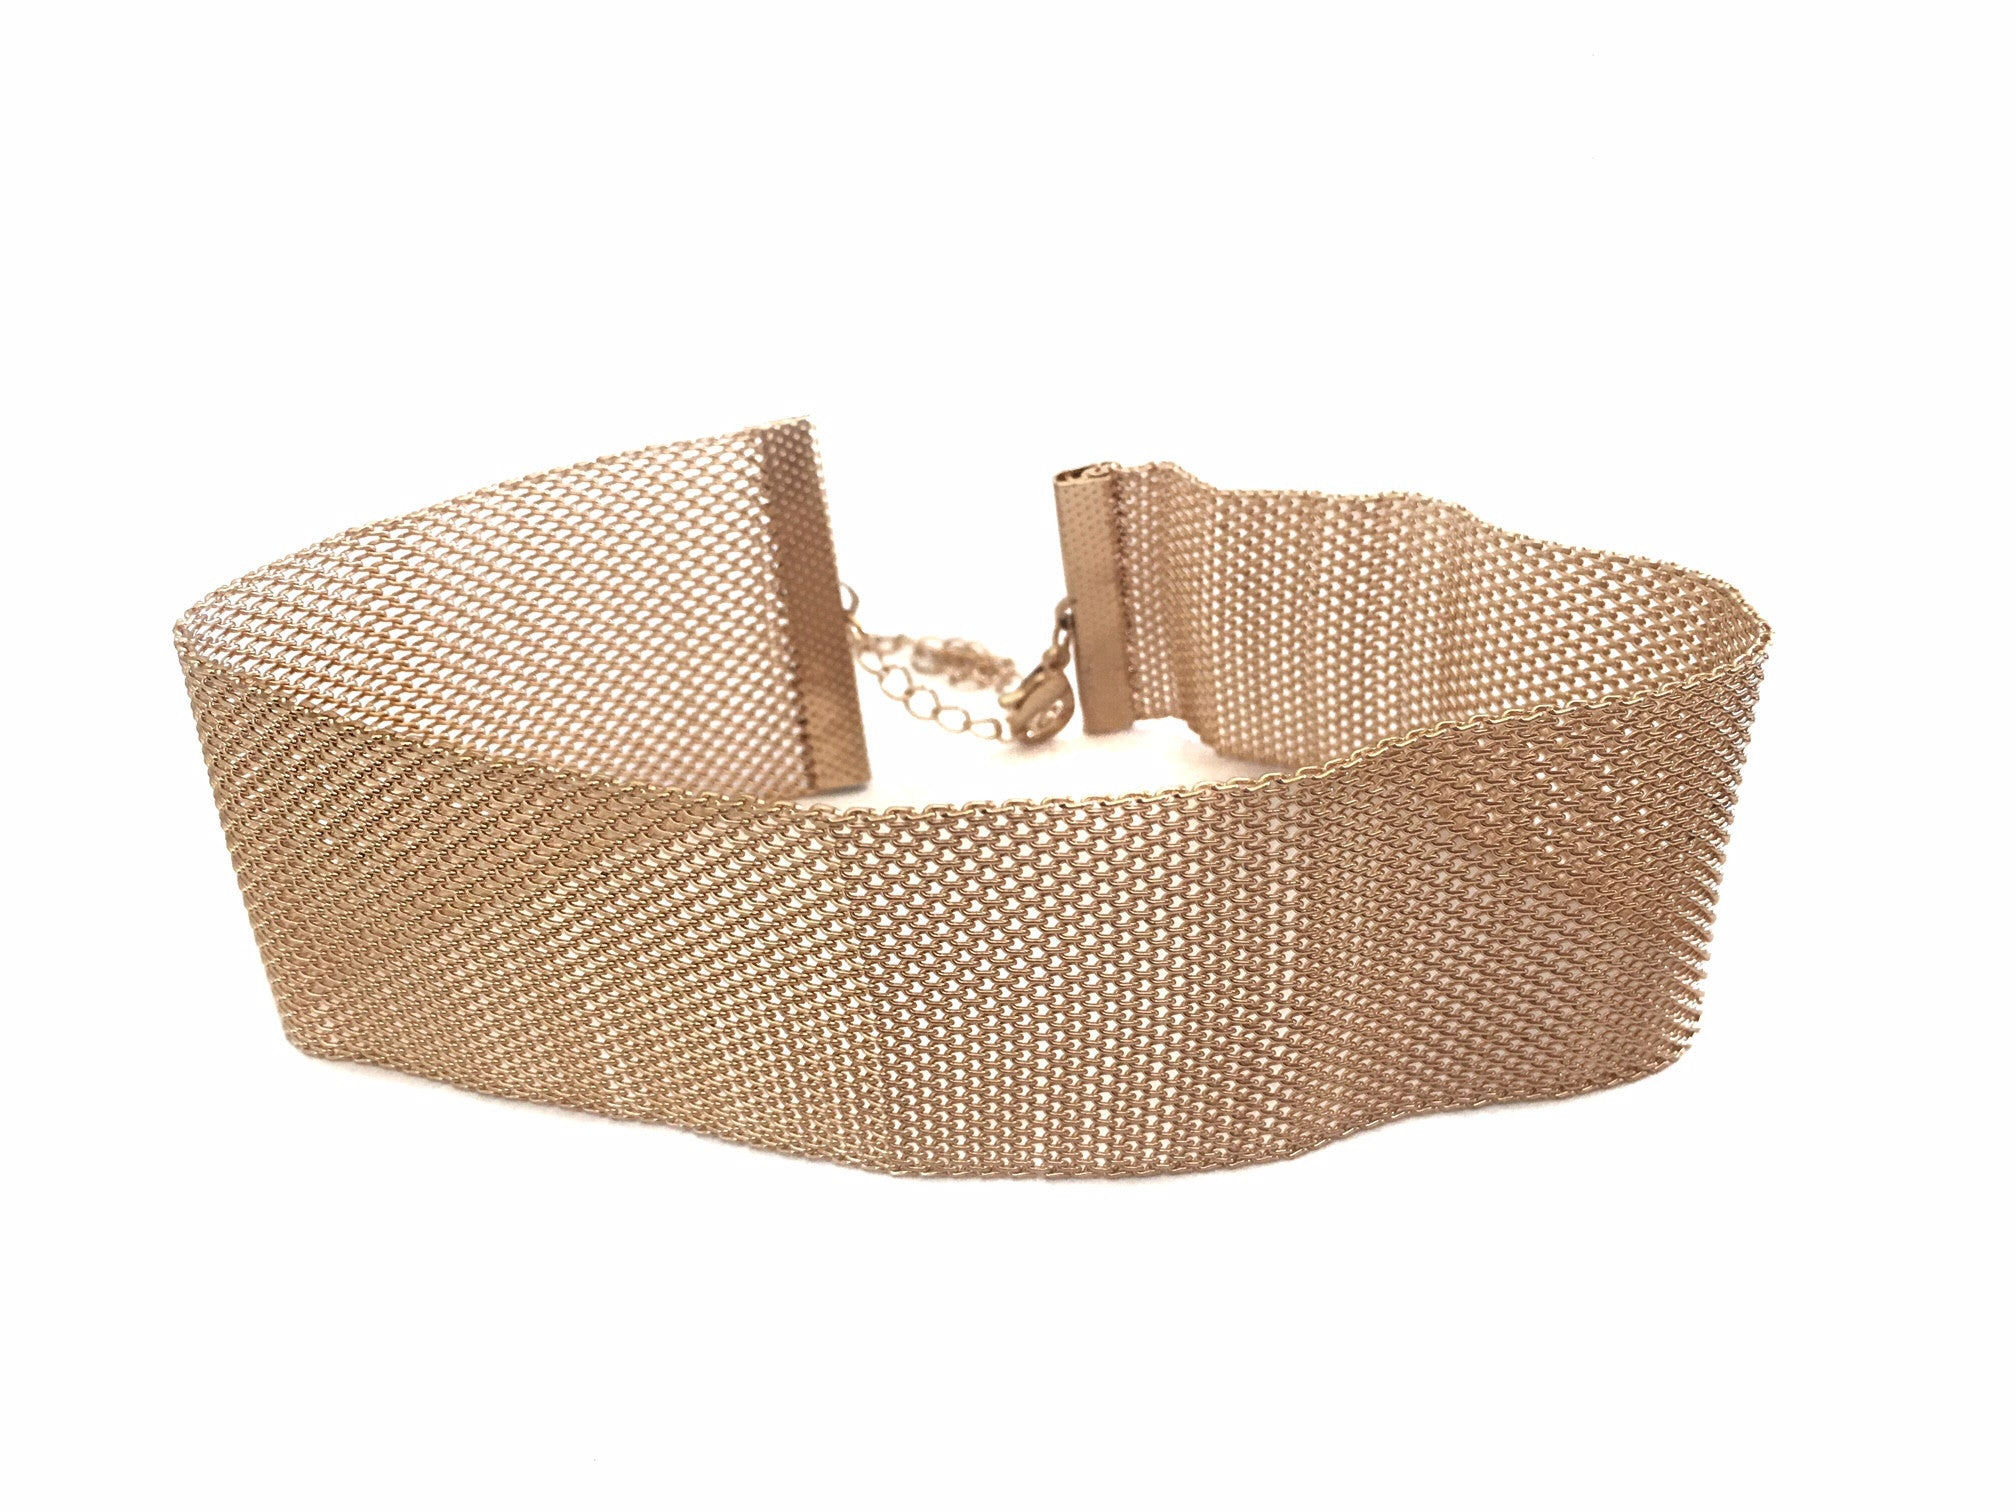 GOLD WIDE MESH CHOKER - Princess J. Jewelry